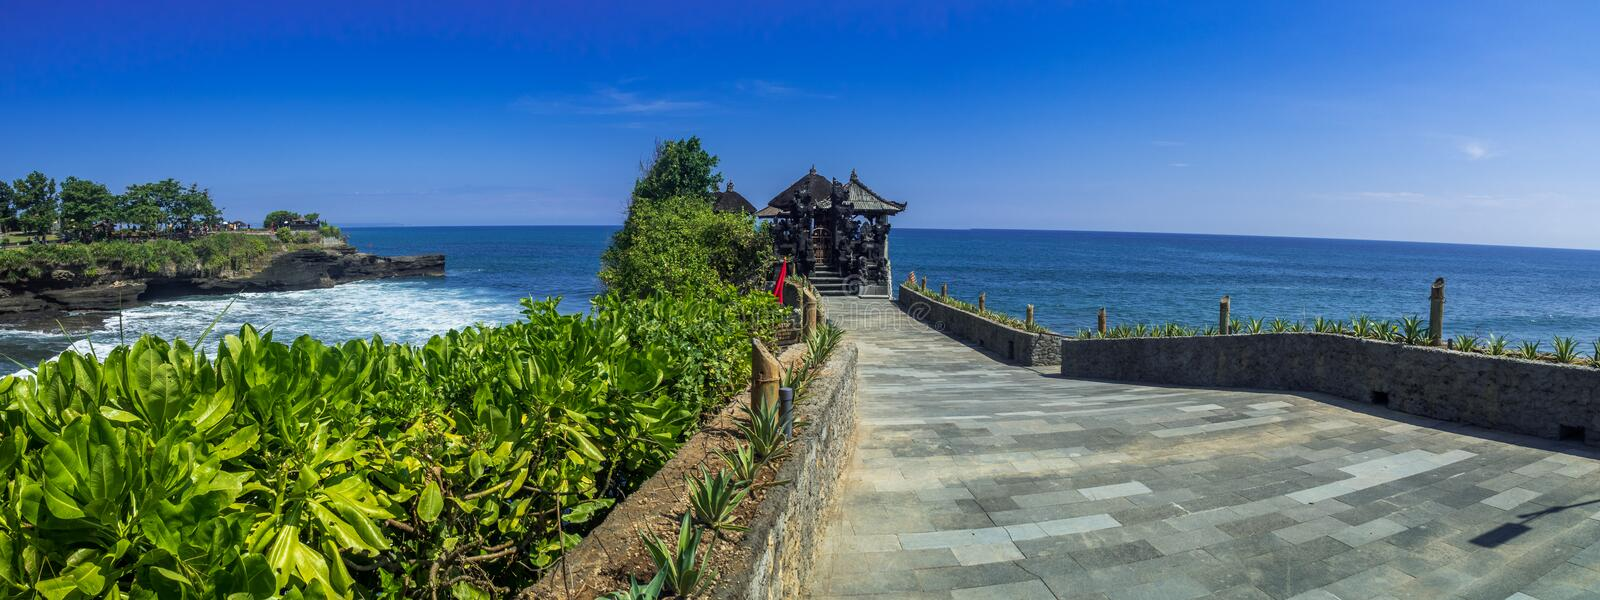 Tempio del lotto di Tanah in Bali Indonesia fotografia stock